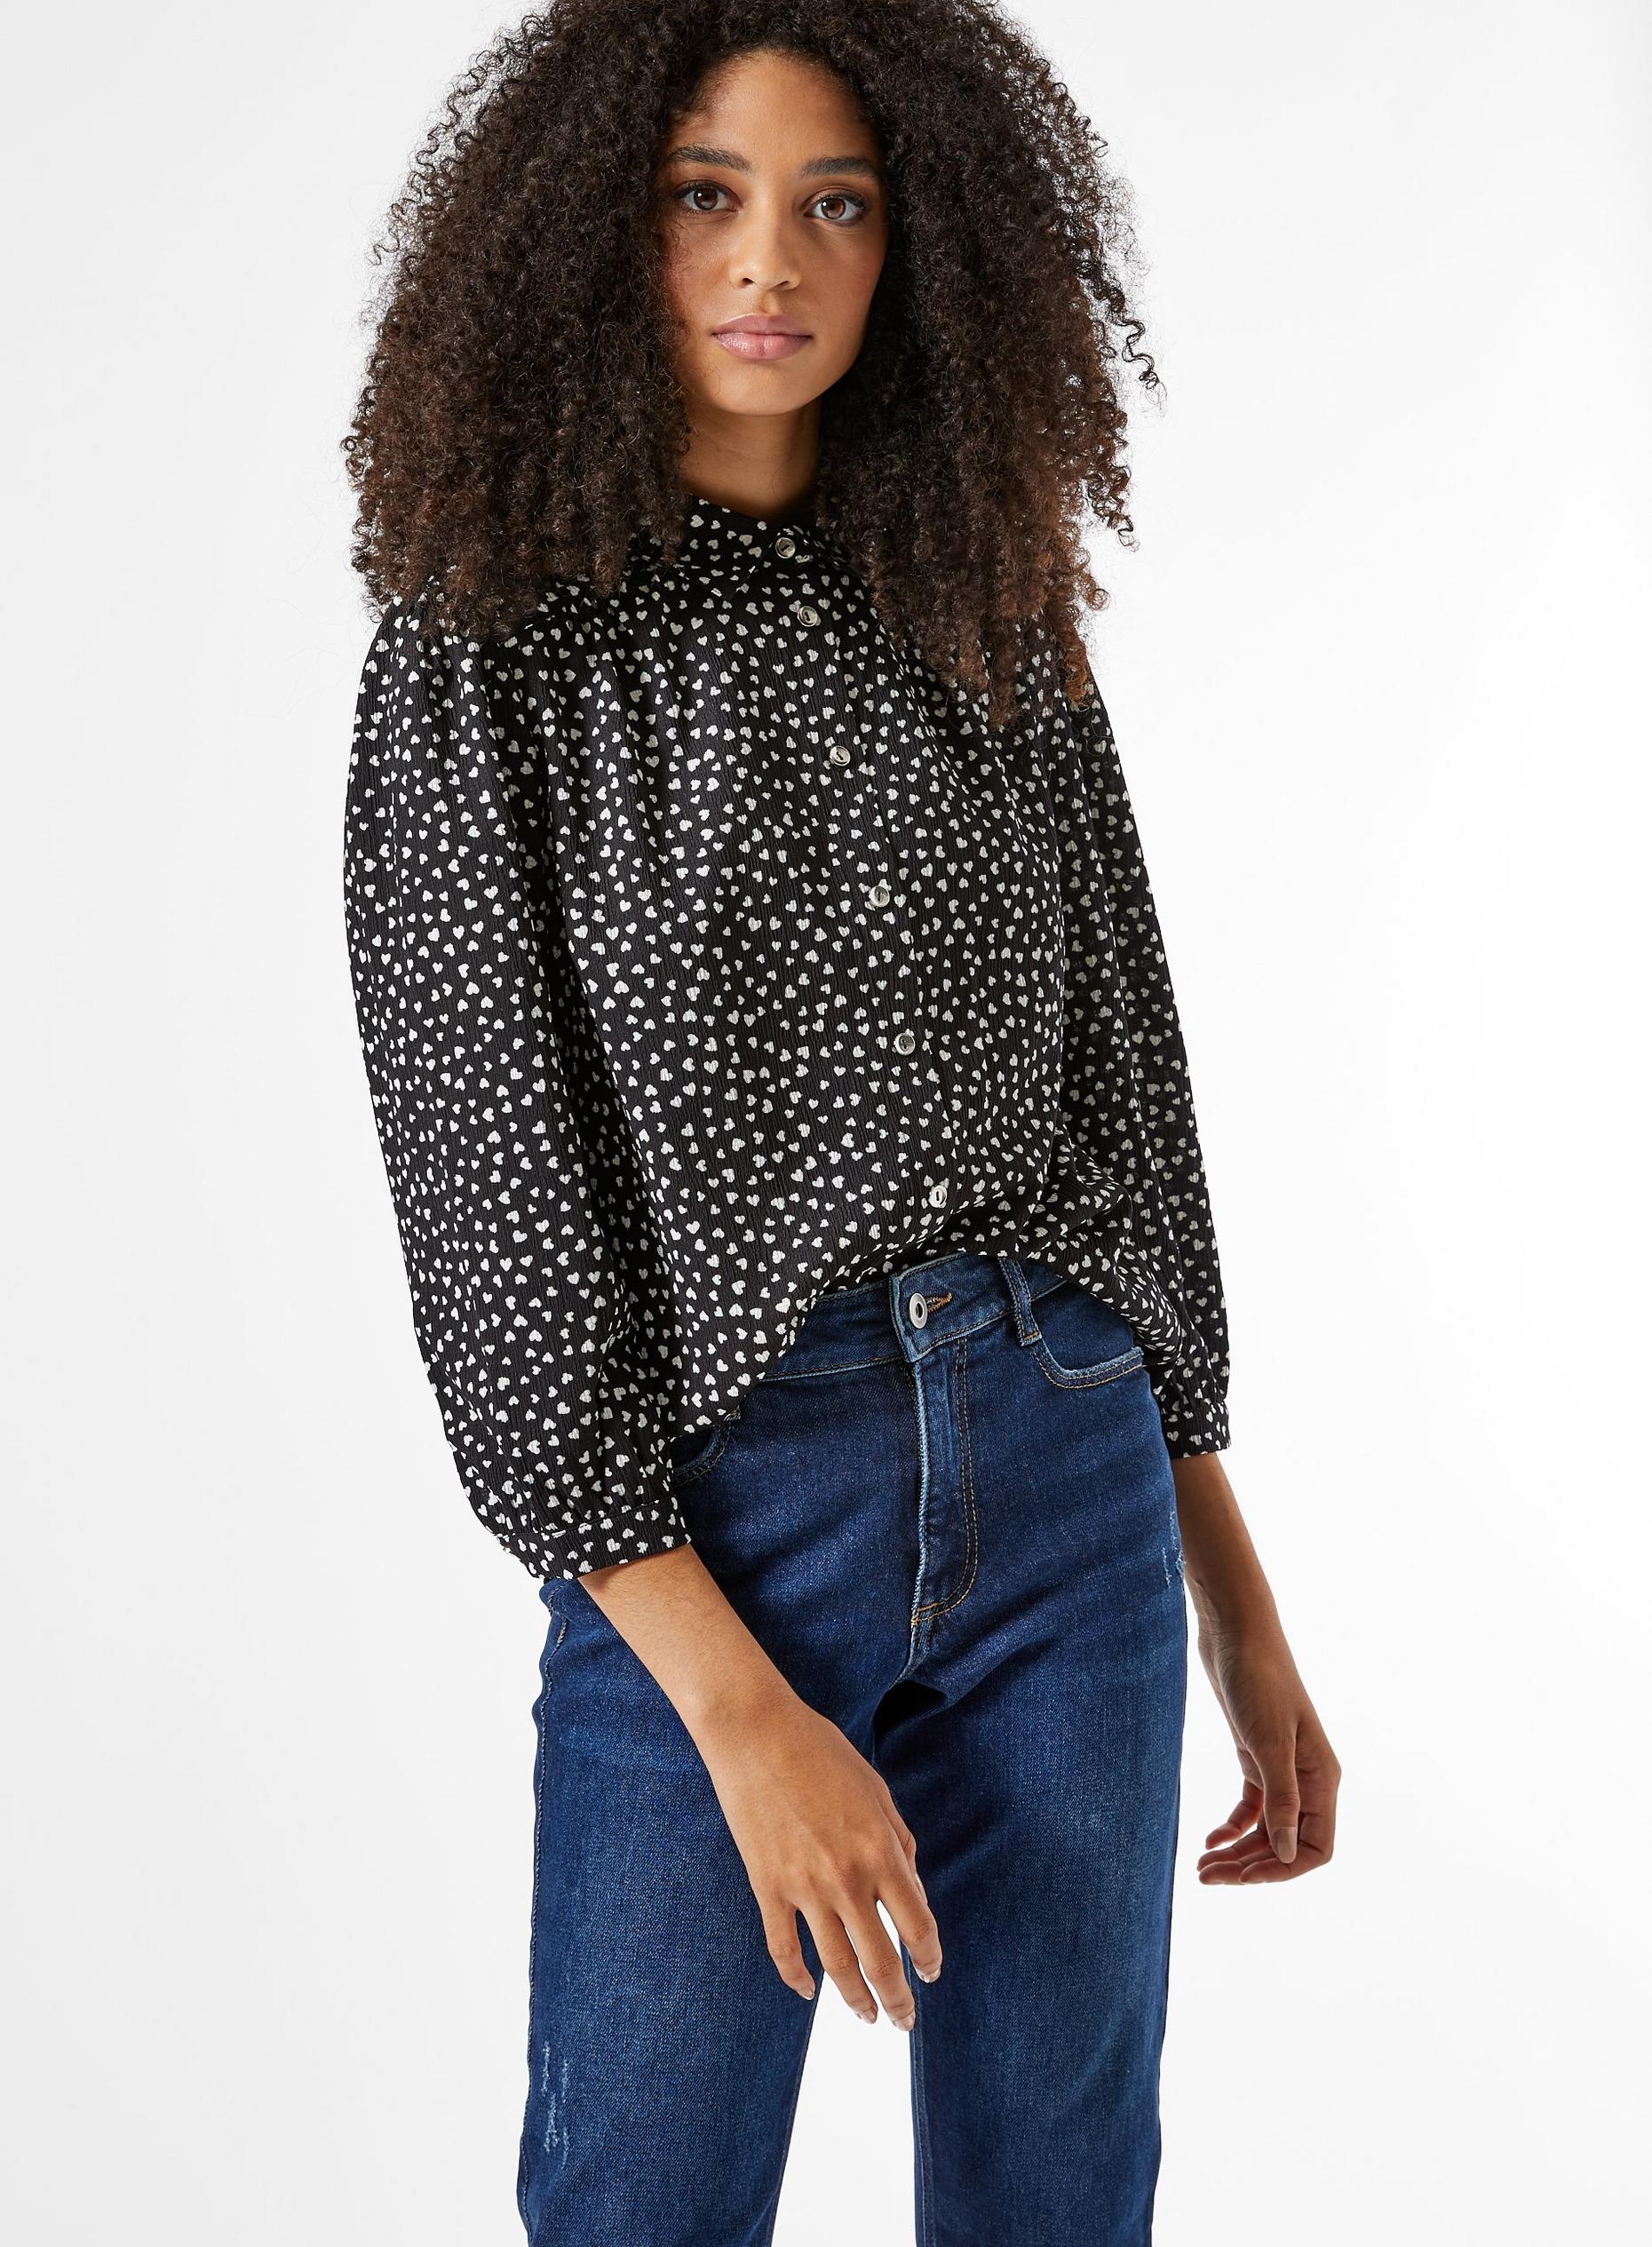 Black And White Heart Print Textured Shirt